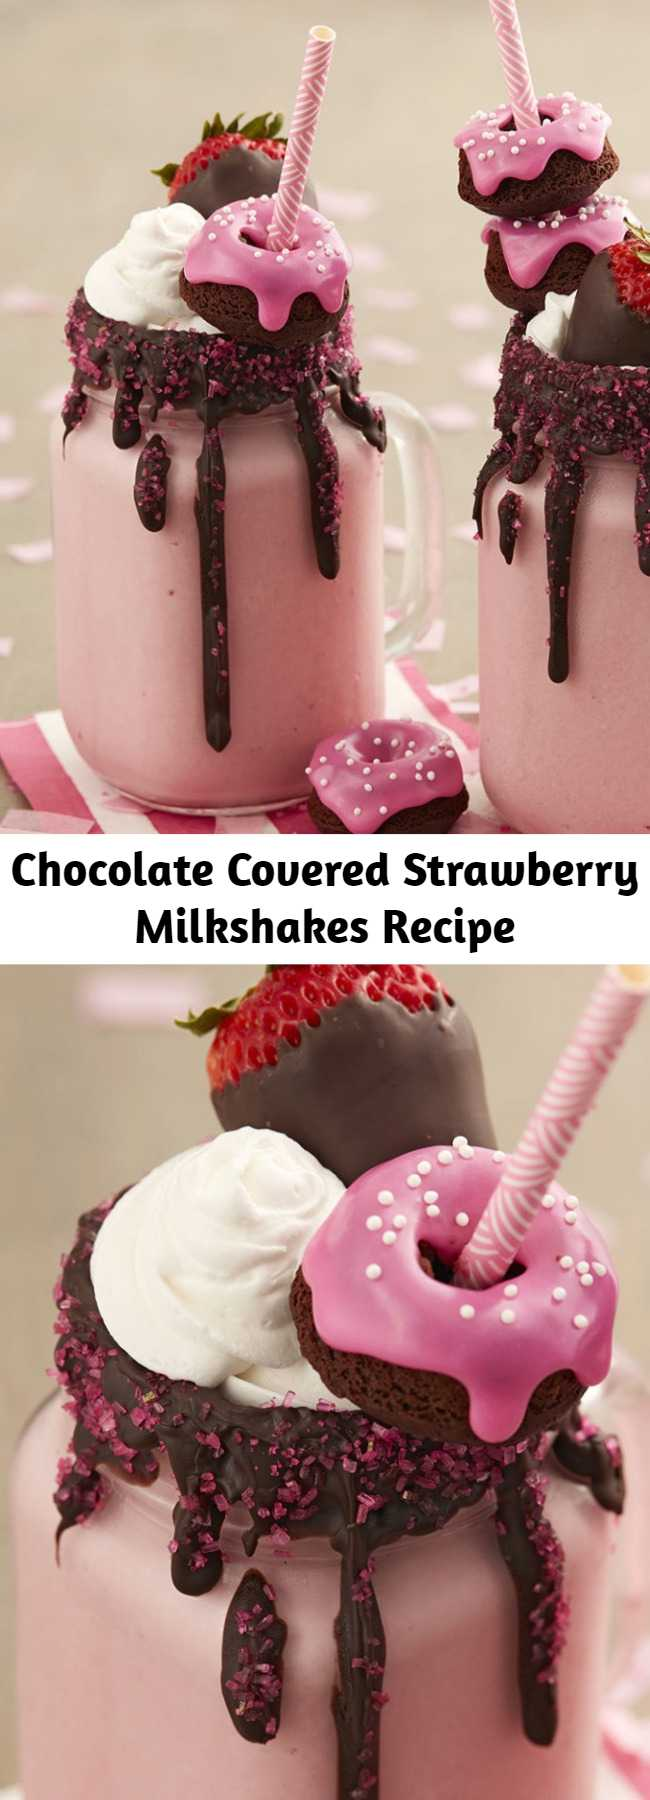 Chocolate Covered Strawberry Milkshakes Recipe - Get the goodness of chocolate covered strawberries in a glass! Dark Cocoa Candy Melts blend perfectly with strawberry ice cream. Top it all off with sparkling sugar, a mini chocolate doughnut and a chocolate covered strawberry, of course.